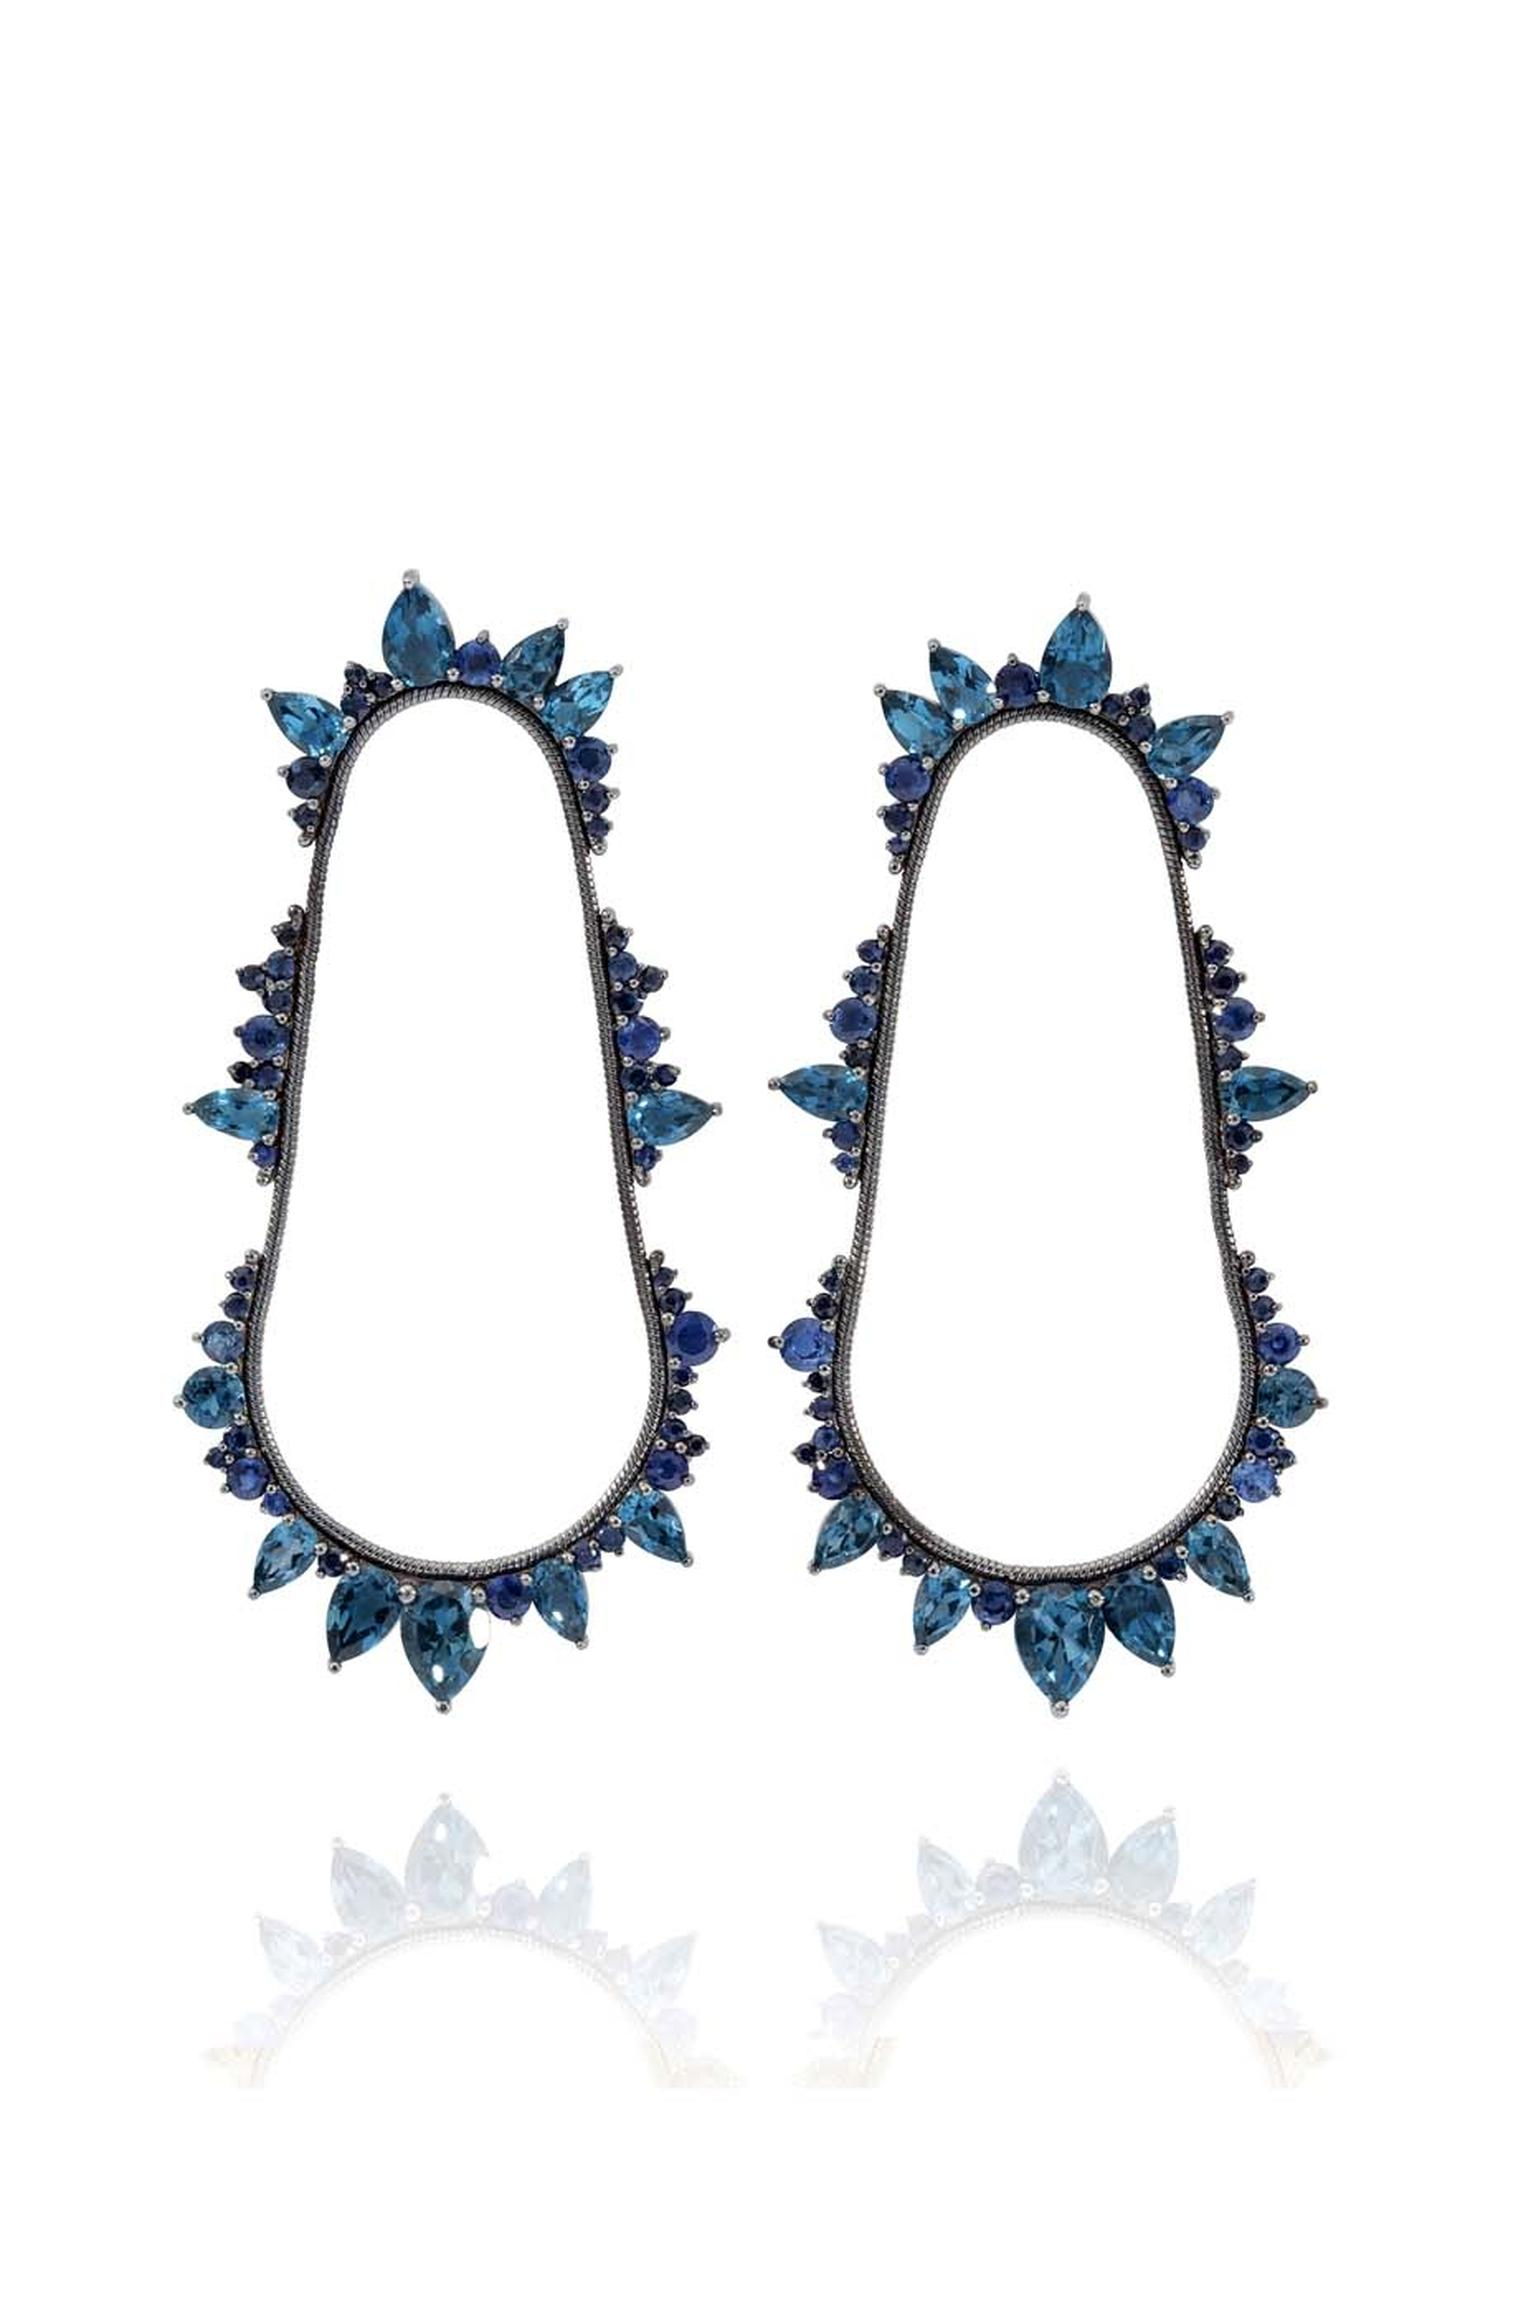 Fernando Jorge Electric Cycle earrings featuring black rhodium plated gold, sapphires and London blue topaz. Available at matchesfashion.com (£6,000).